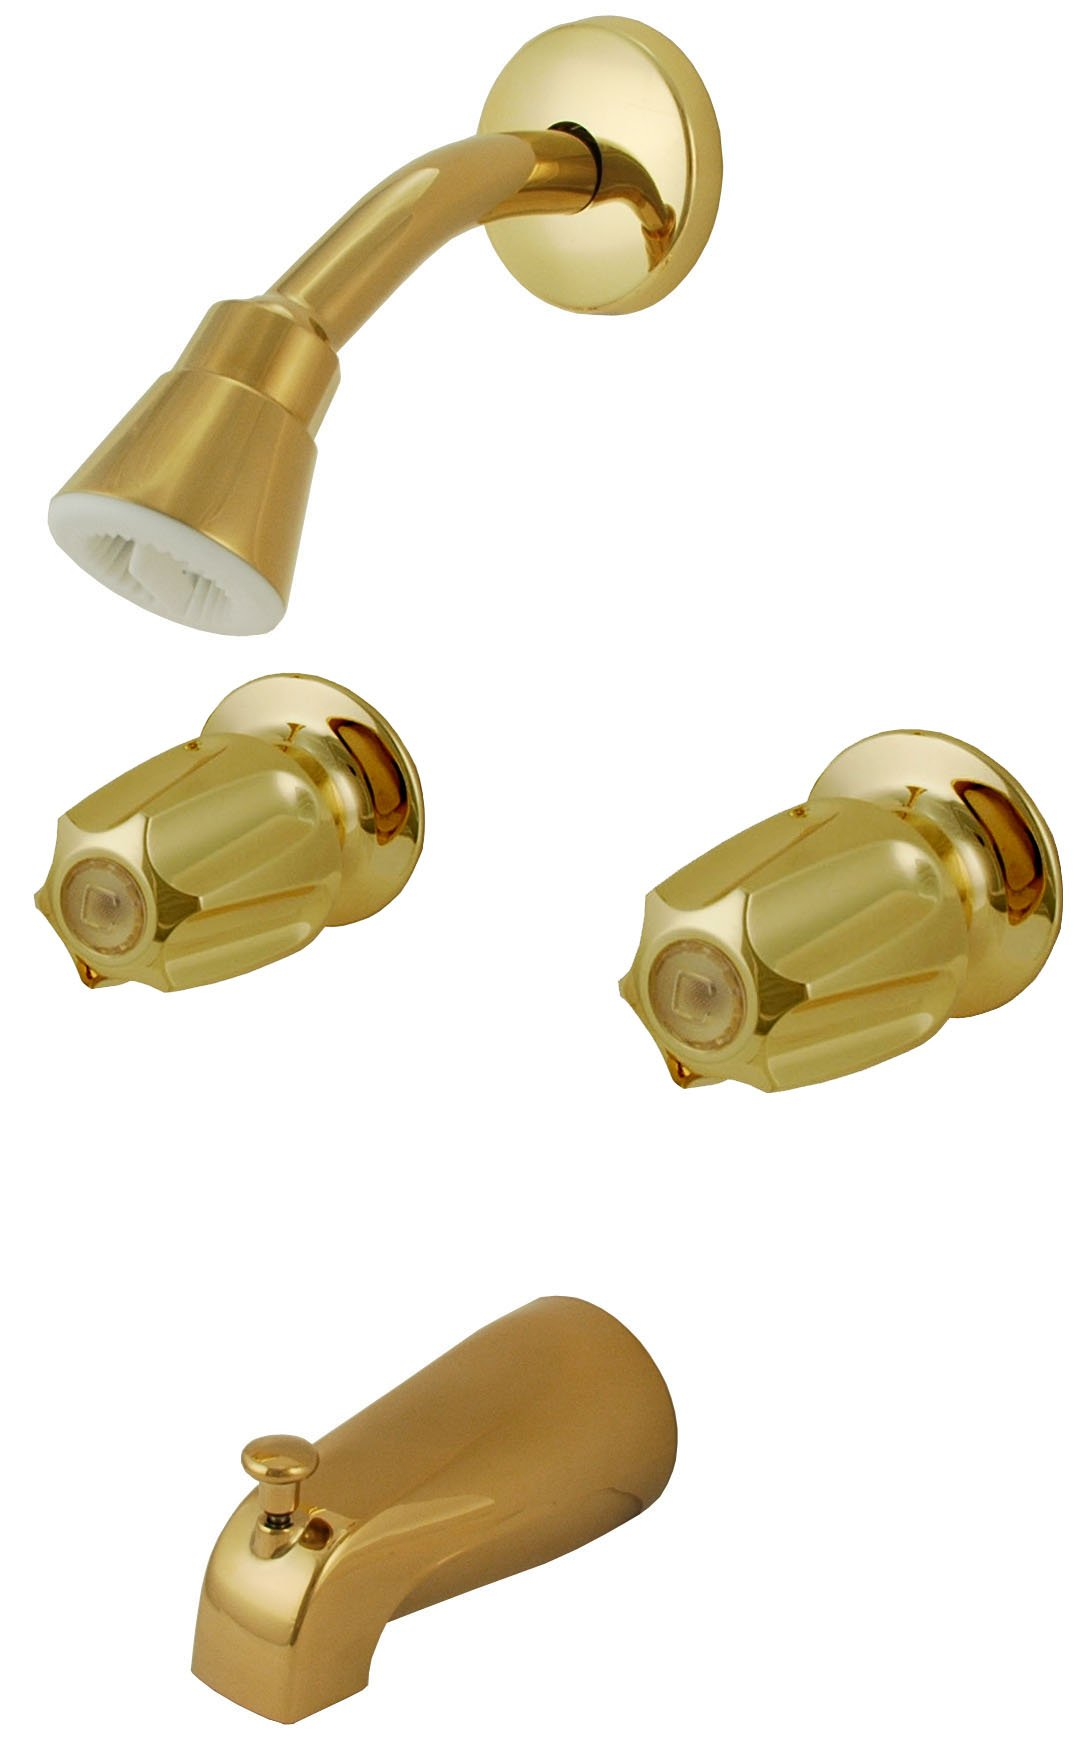 Trim Kit for 2-handle Shower Valve, Fit Price Pfister Compression Stem Shower, Polished Brass Finish -By Plumb USA 34205PVD